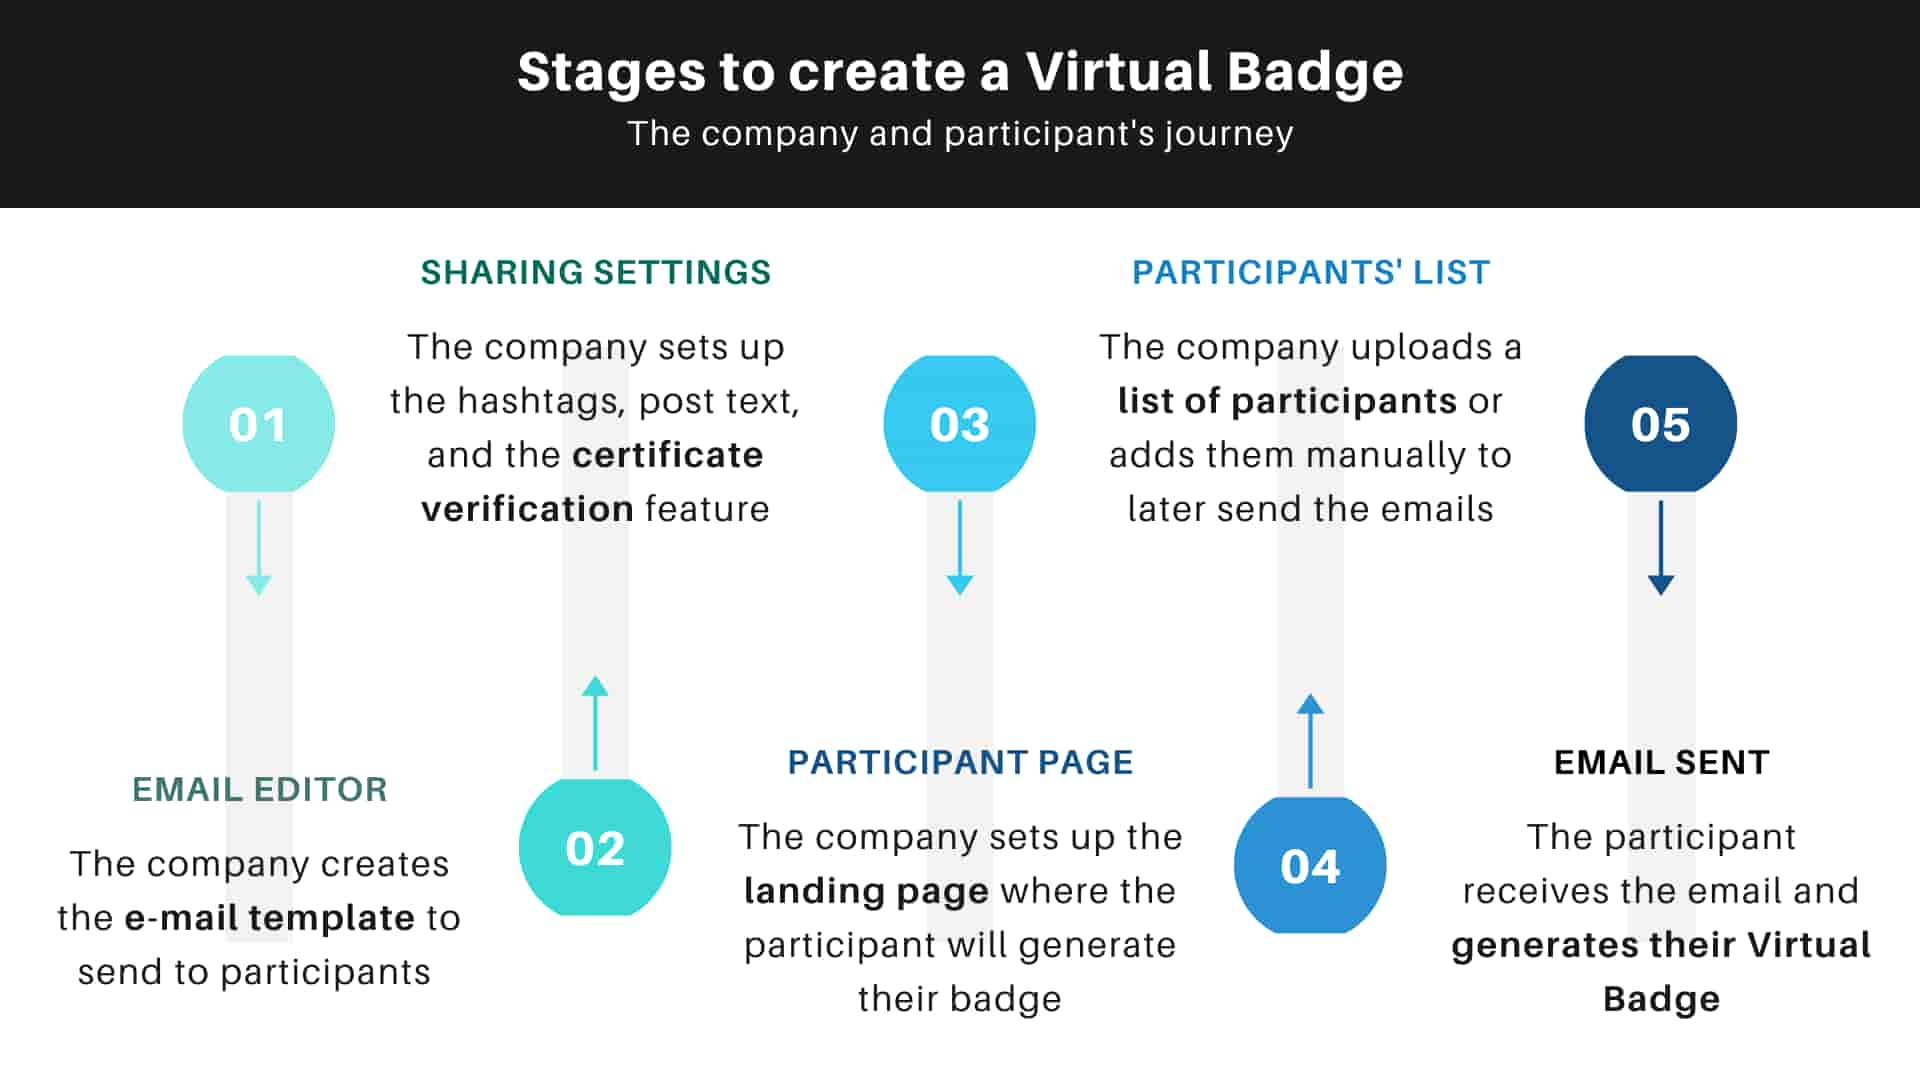 Stages to create a Virtual Badge using Virtualbadge.io software